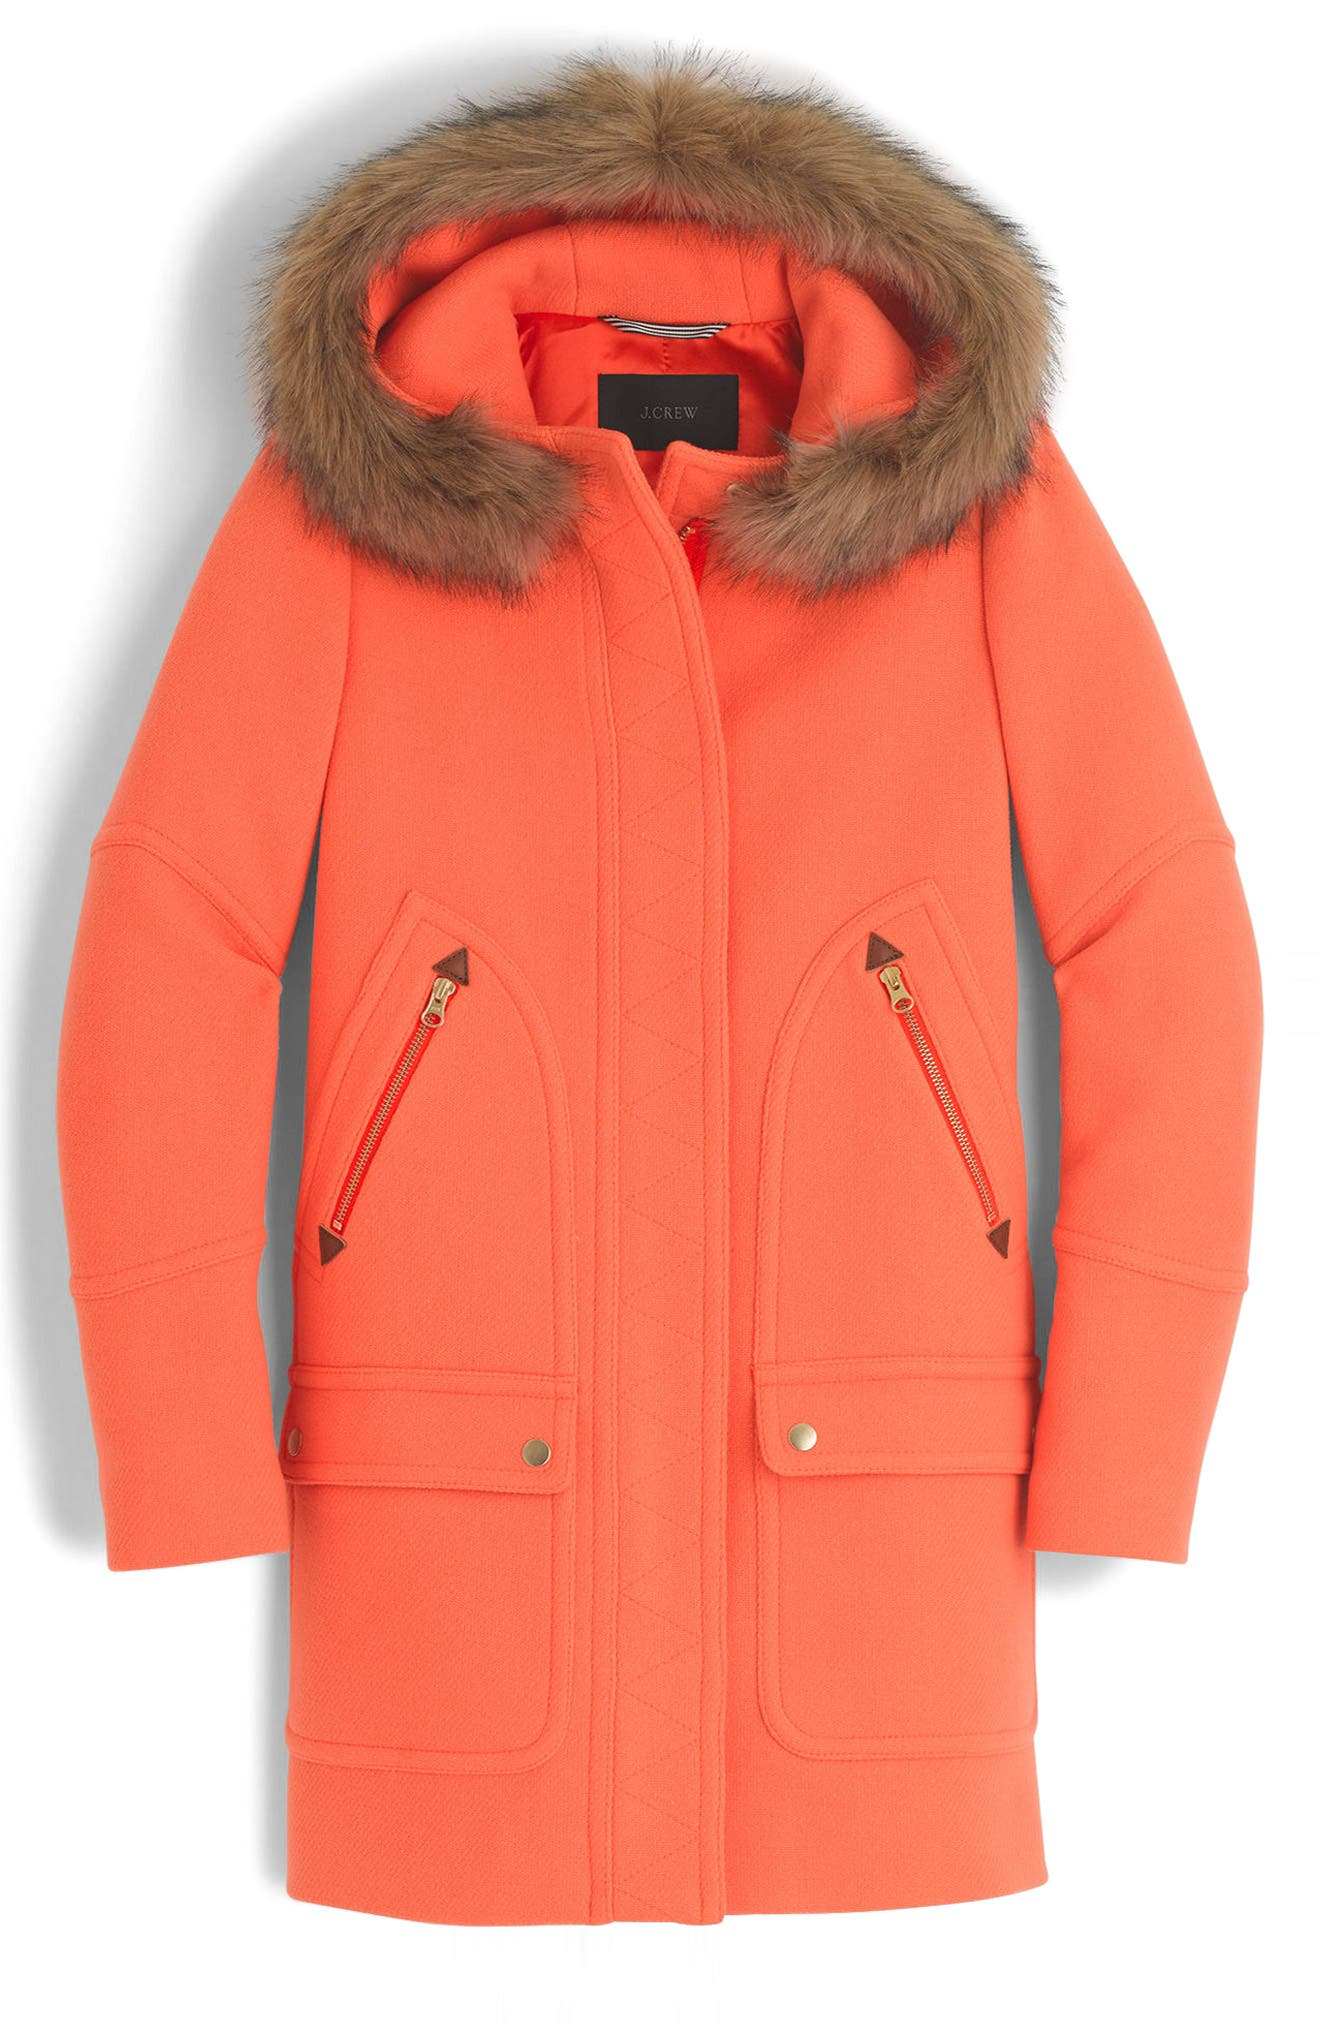 J.Crew Chateau Stadium Cloth Parka with Faux Fur (Regular & Petite)